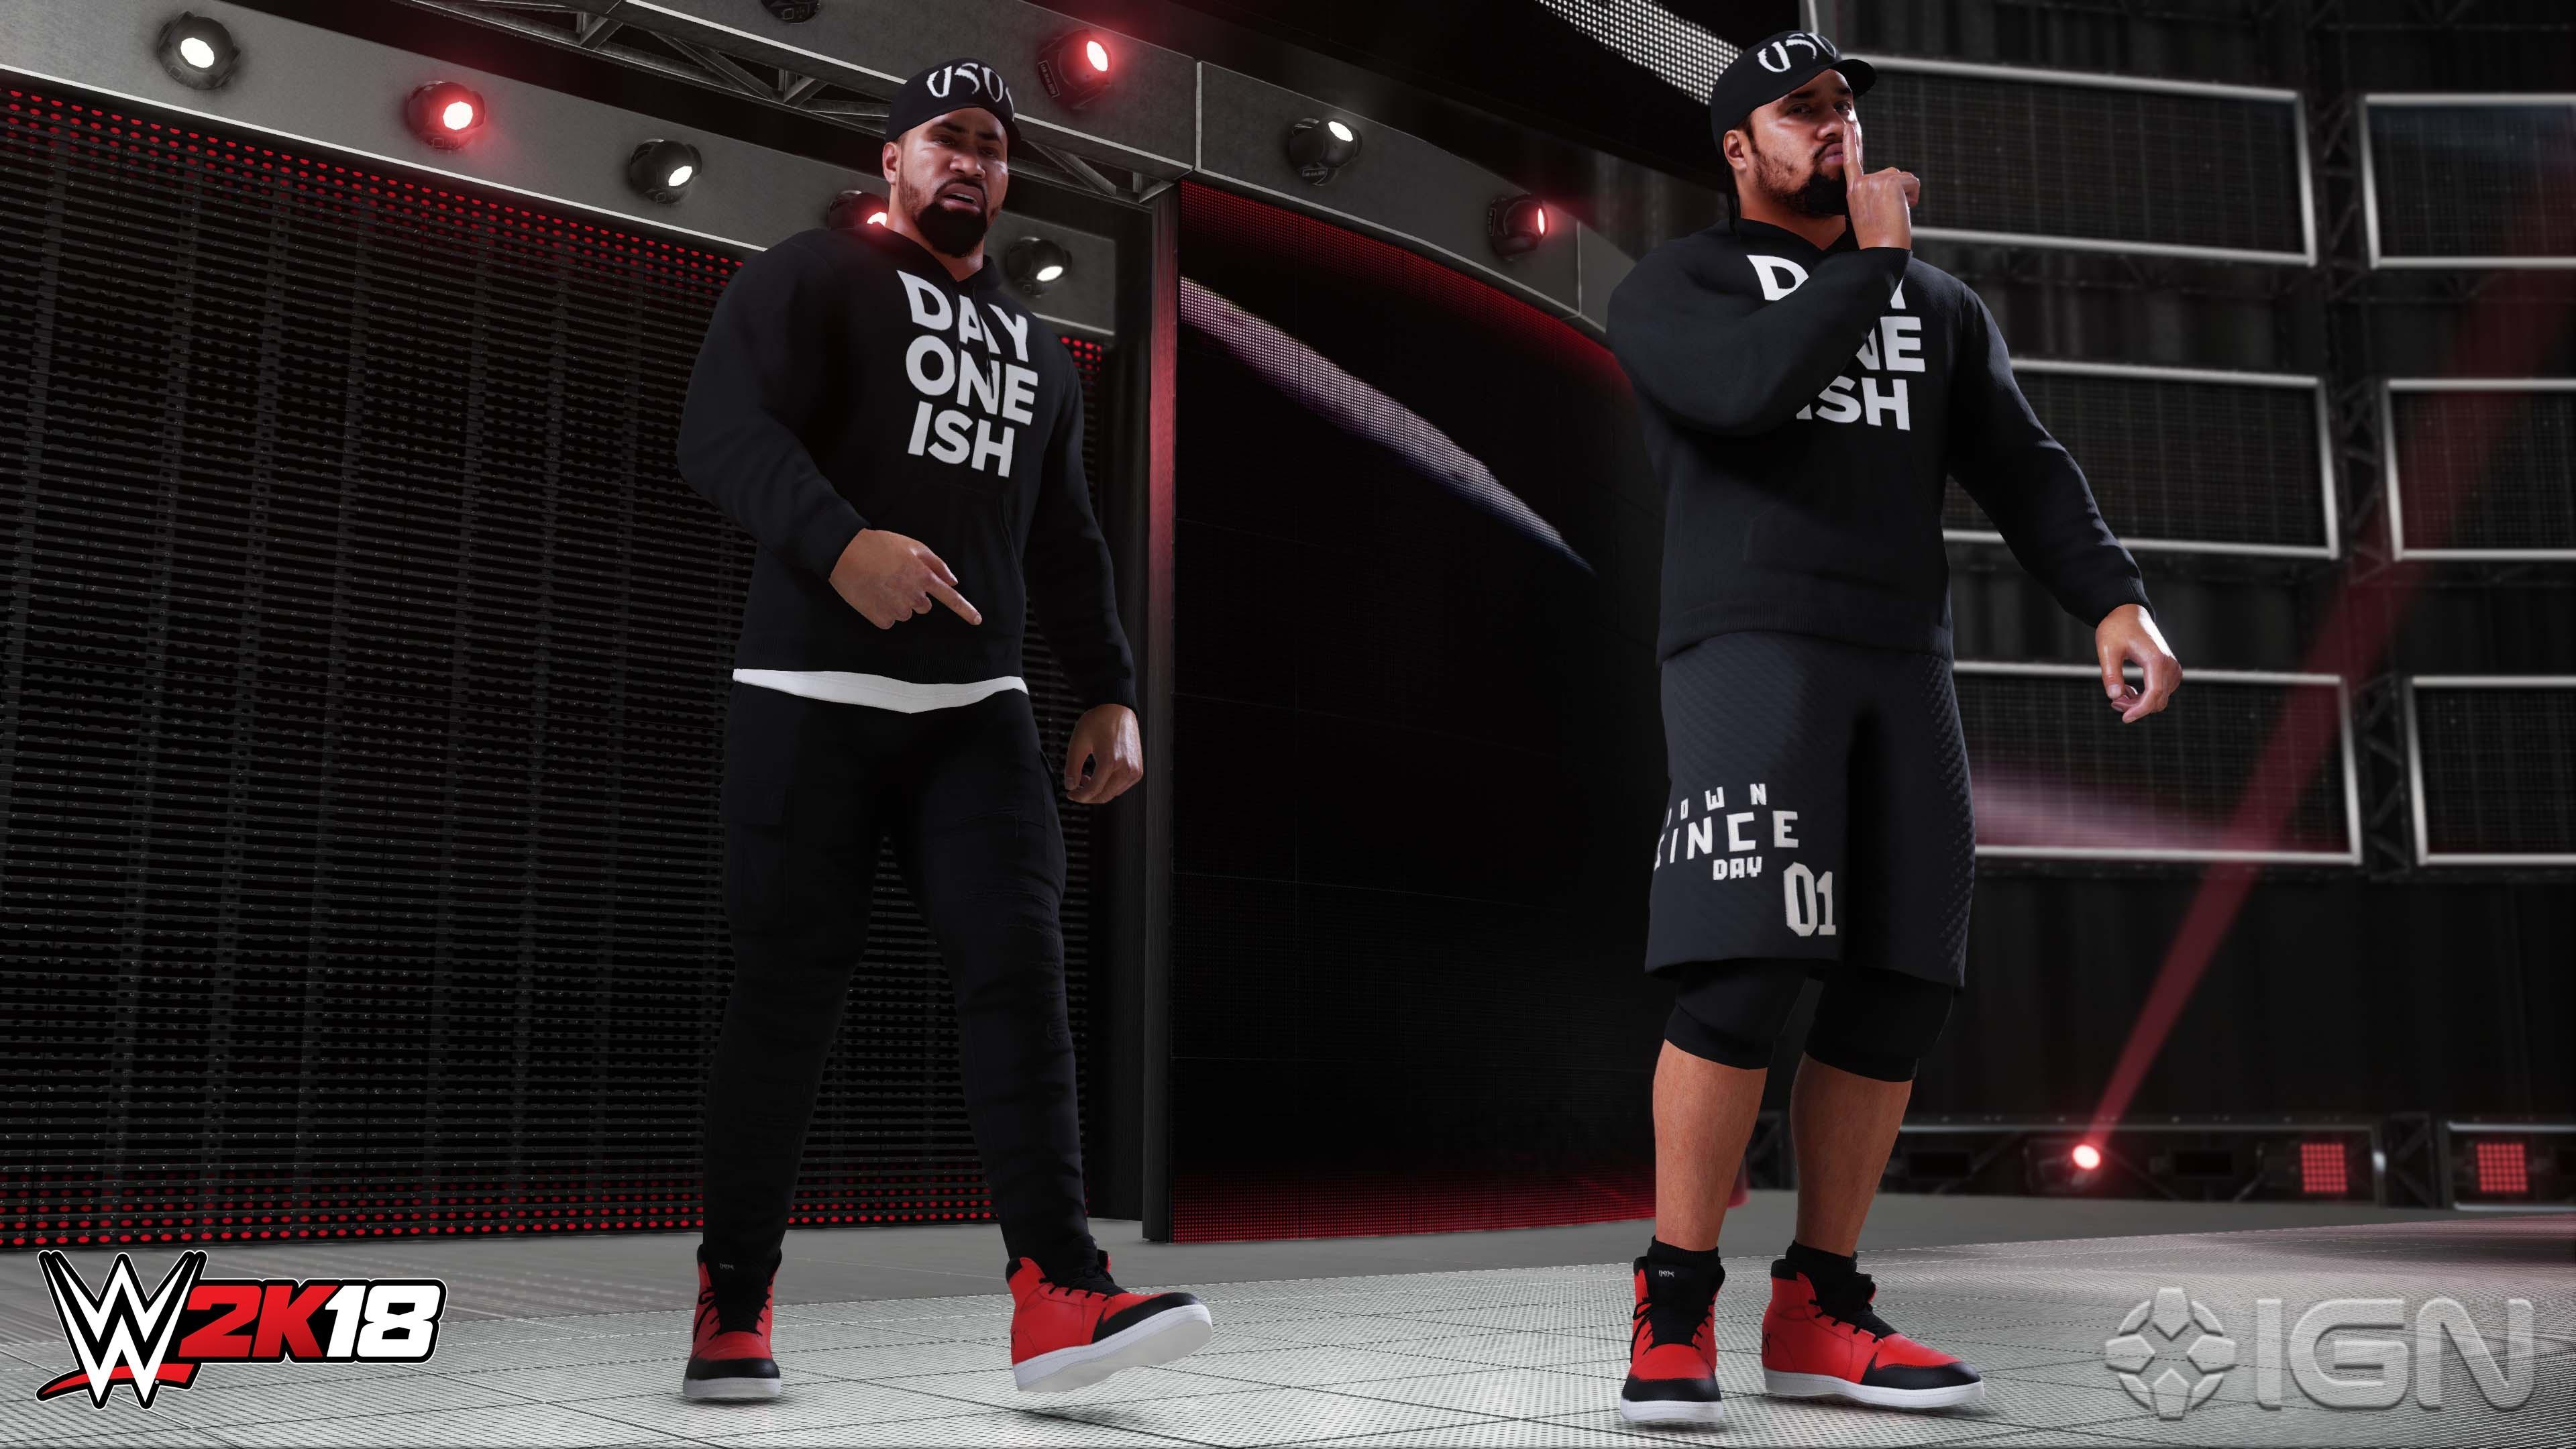 Godfather Hd Wallpaper Wwe 2k18 More Superstars And Entrance Videos Revealed